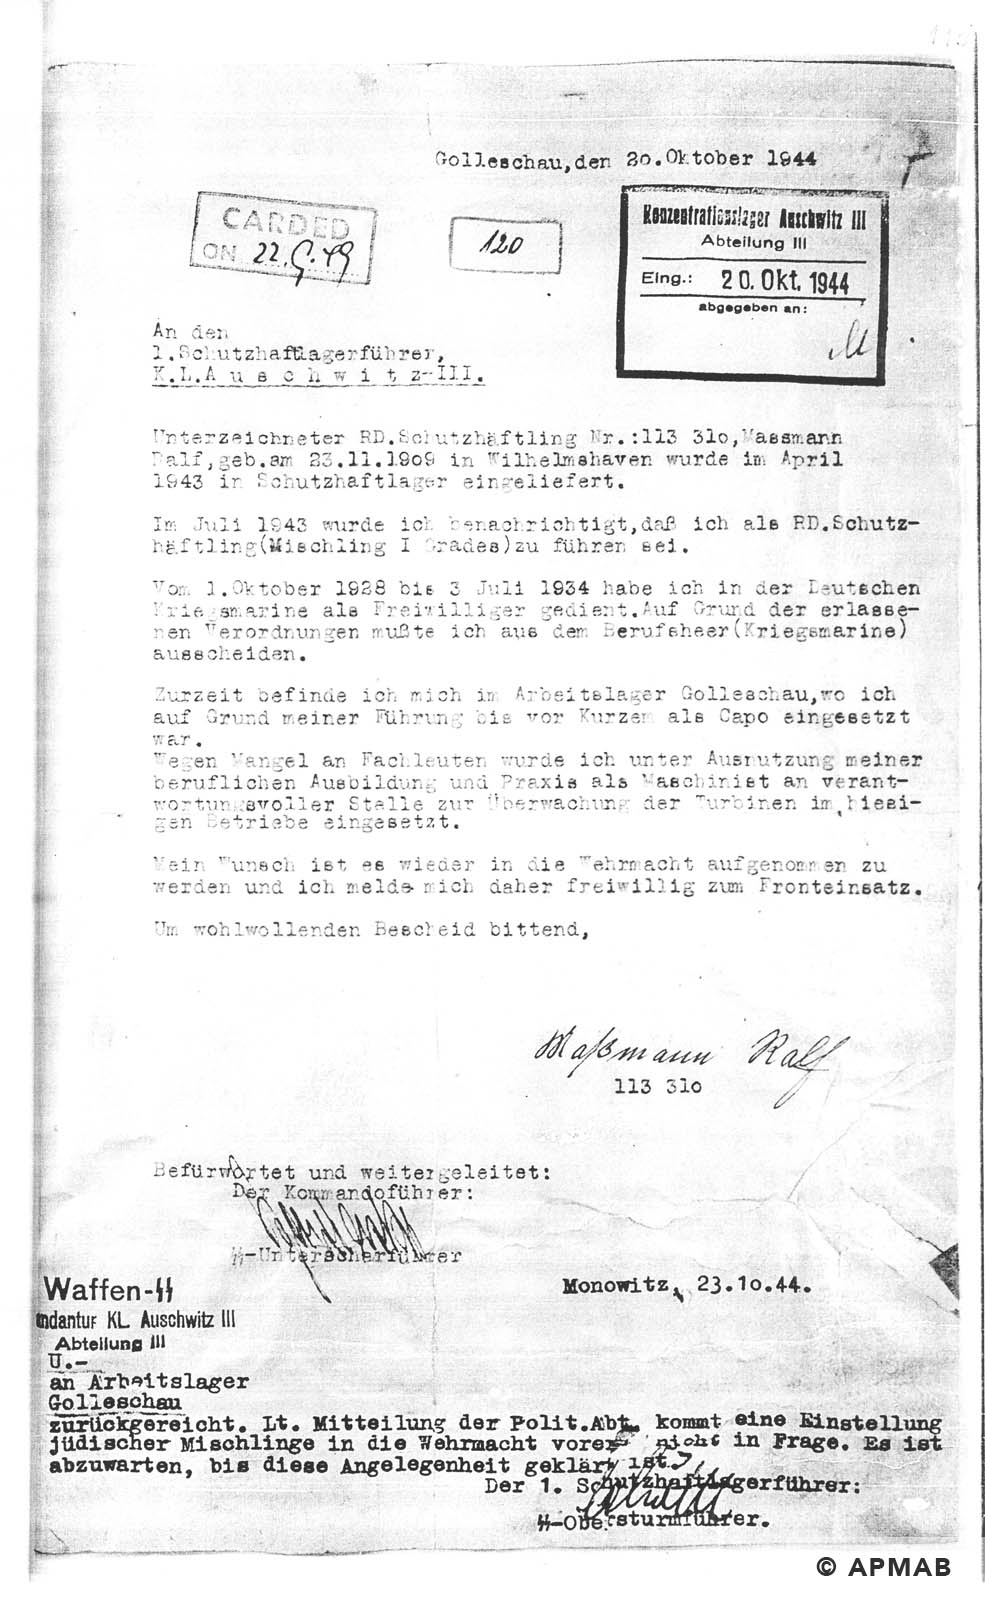 Letter from German Jewish Mischling I grade and a prisoner capo in Golleschau sub camp wishing to volunteer for the Wehrmacht APMAB nr inw. 149715 str.115